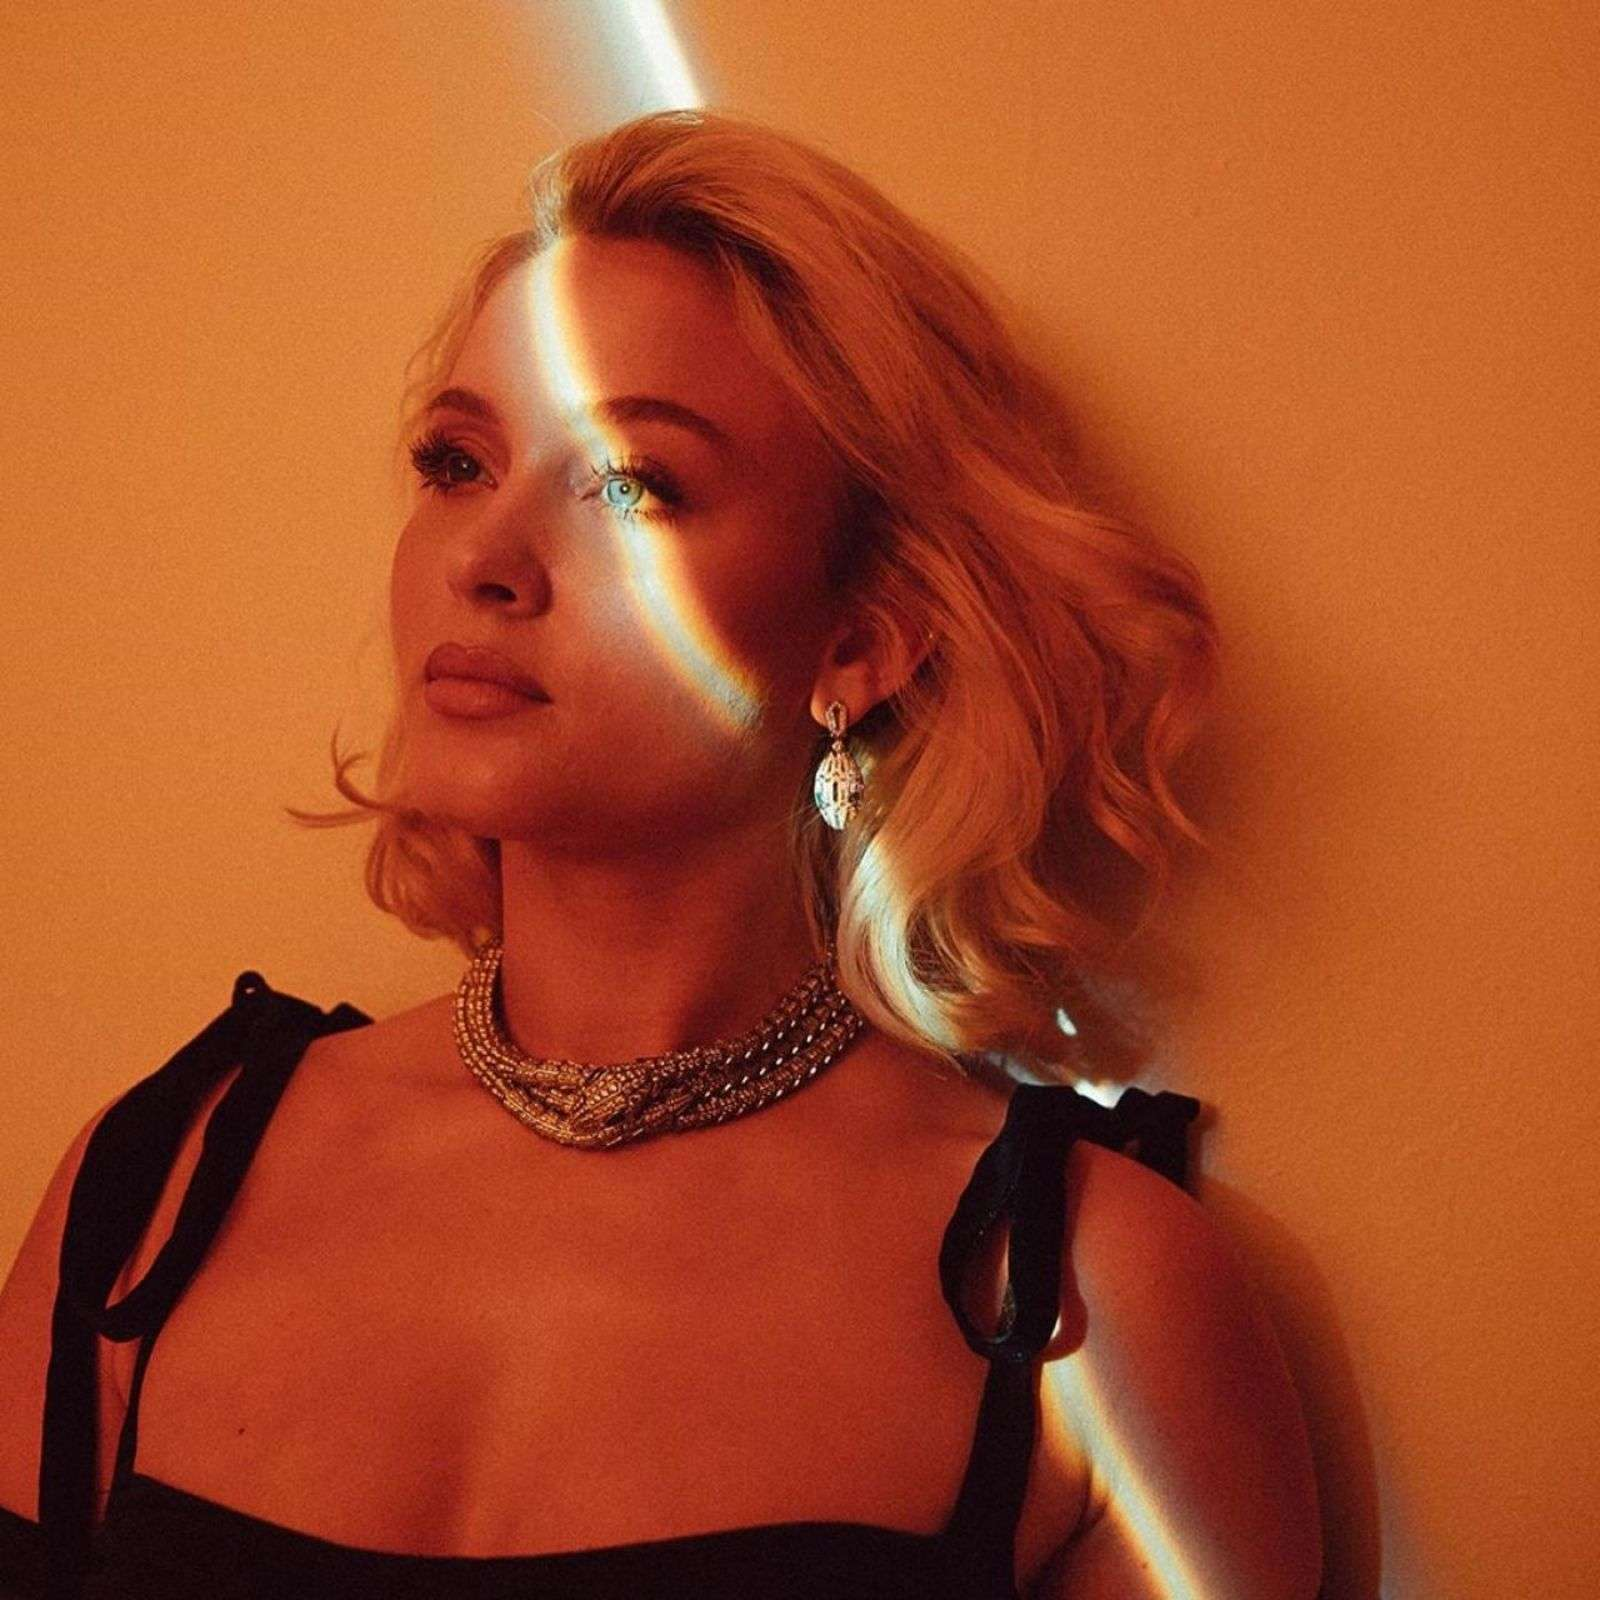 Zara Larsson PhotoShoot For Like It Is Promos 2020 HD